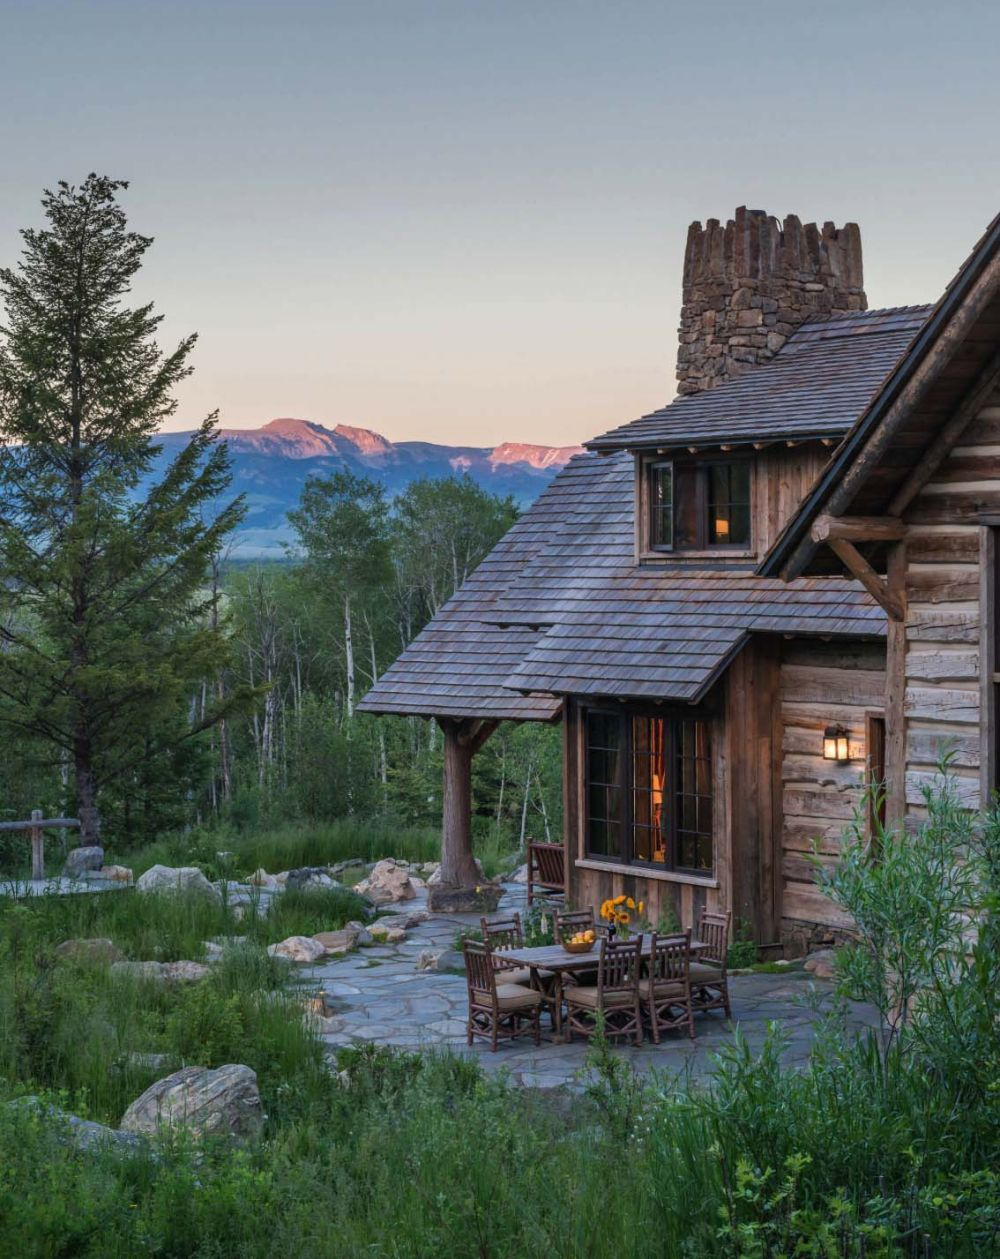 Mountain Getaway Is A Spectacular Rustic Retreat Focused On Nature Mountain Home Architect Architecture